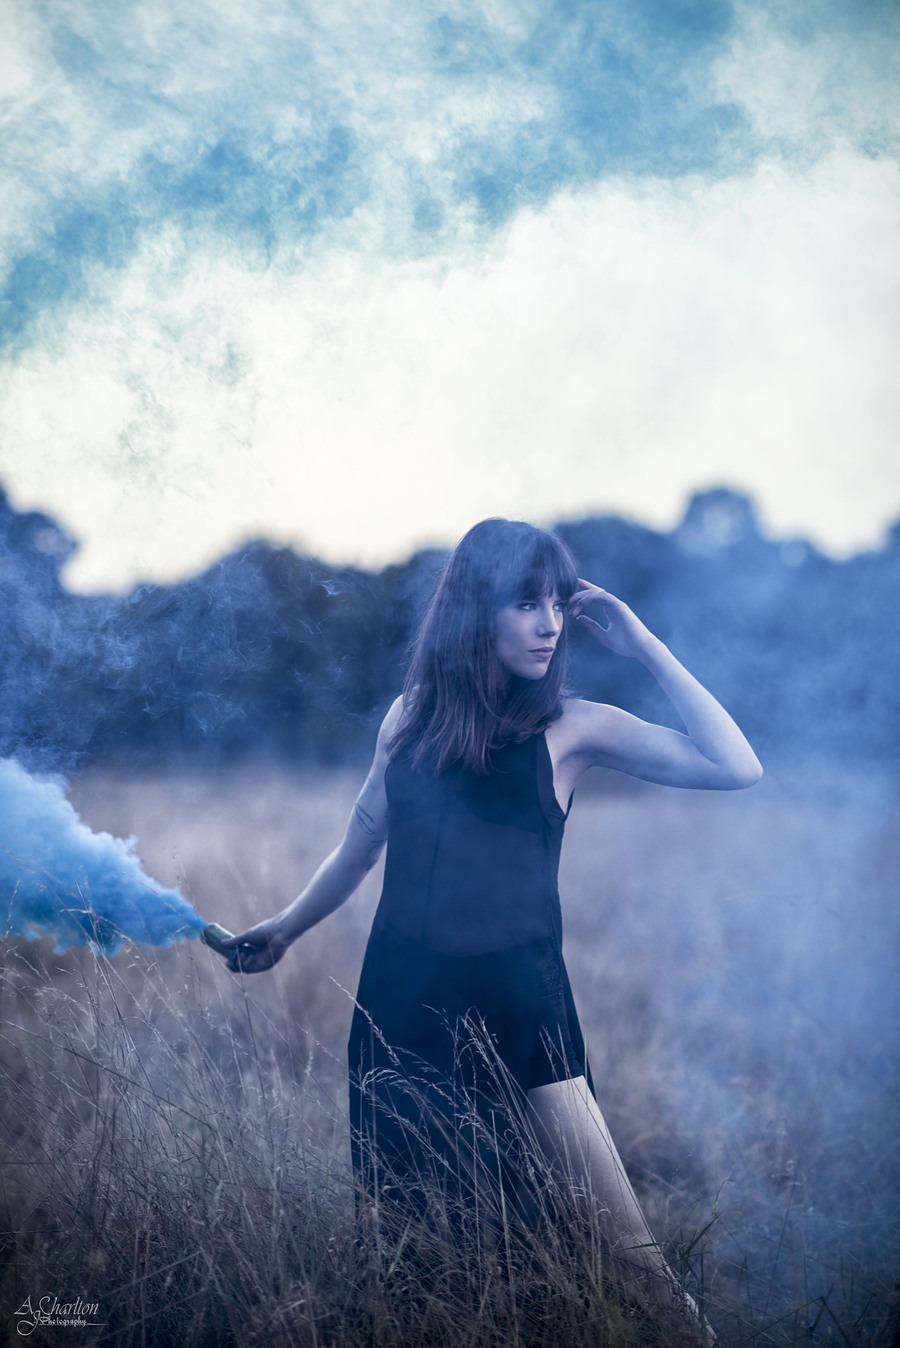 Blue Smoke In The Fields. / Photography by AJ Charlton / Uploaded 24th September 2016 @ 03:07 PM